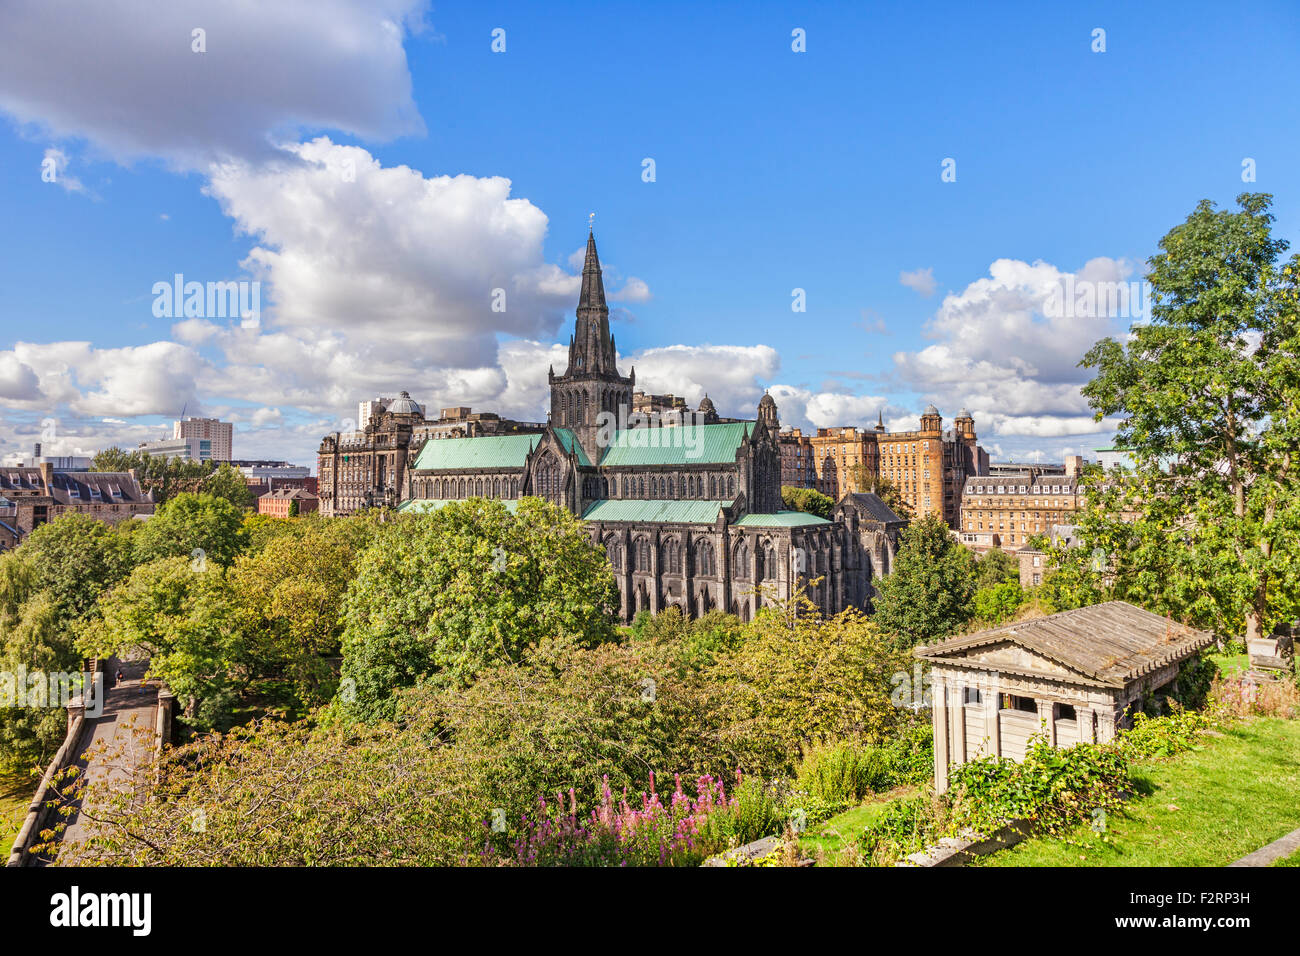 Glasgow Cathedral and behind it, Glasgow Royal Infirmary, Glasgow, Scotland, UK. - Stock Image